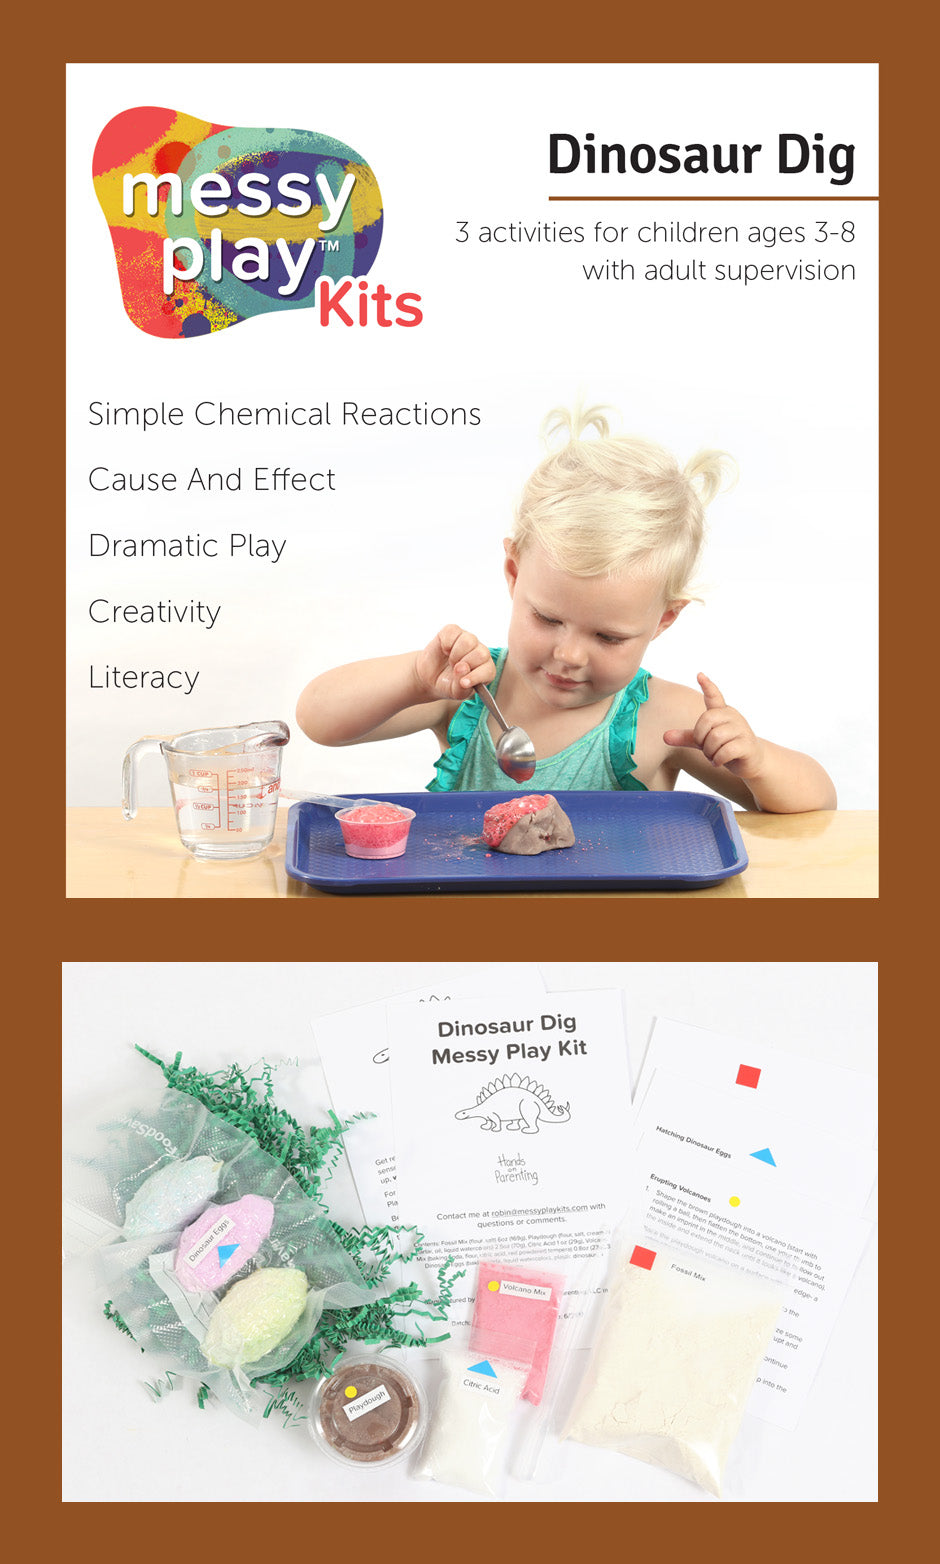 Dinosaur Dig Messy Play Kit Label